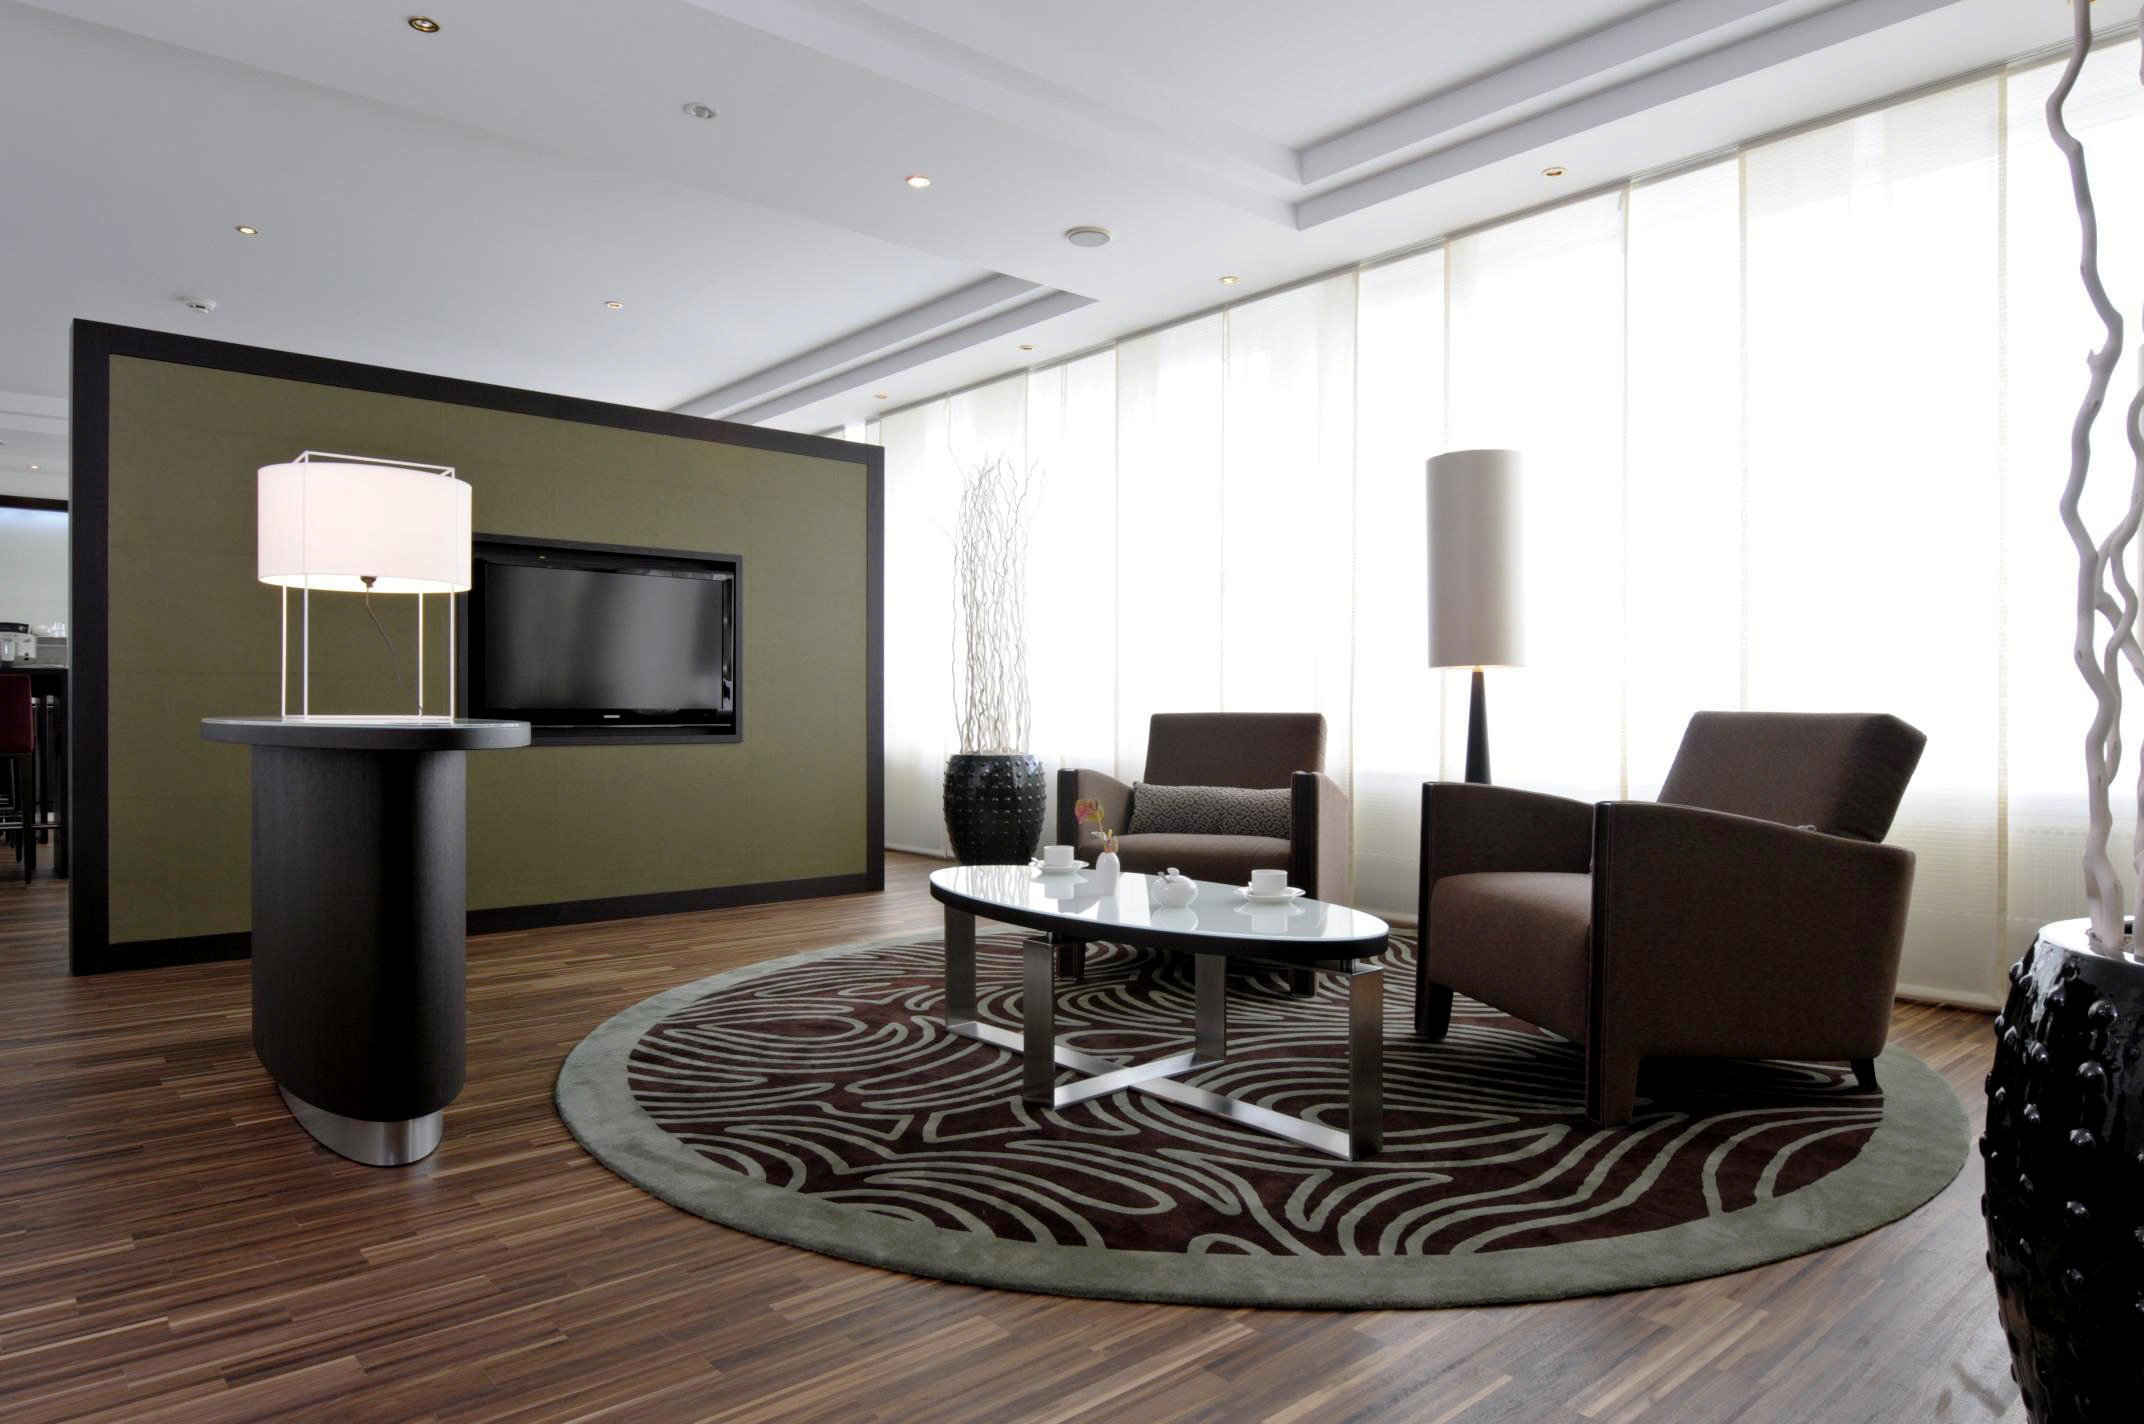 Bedroom Suite property living room conference hall Lobby condominium home dining table